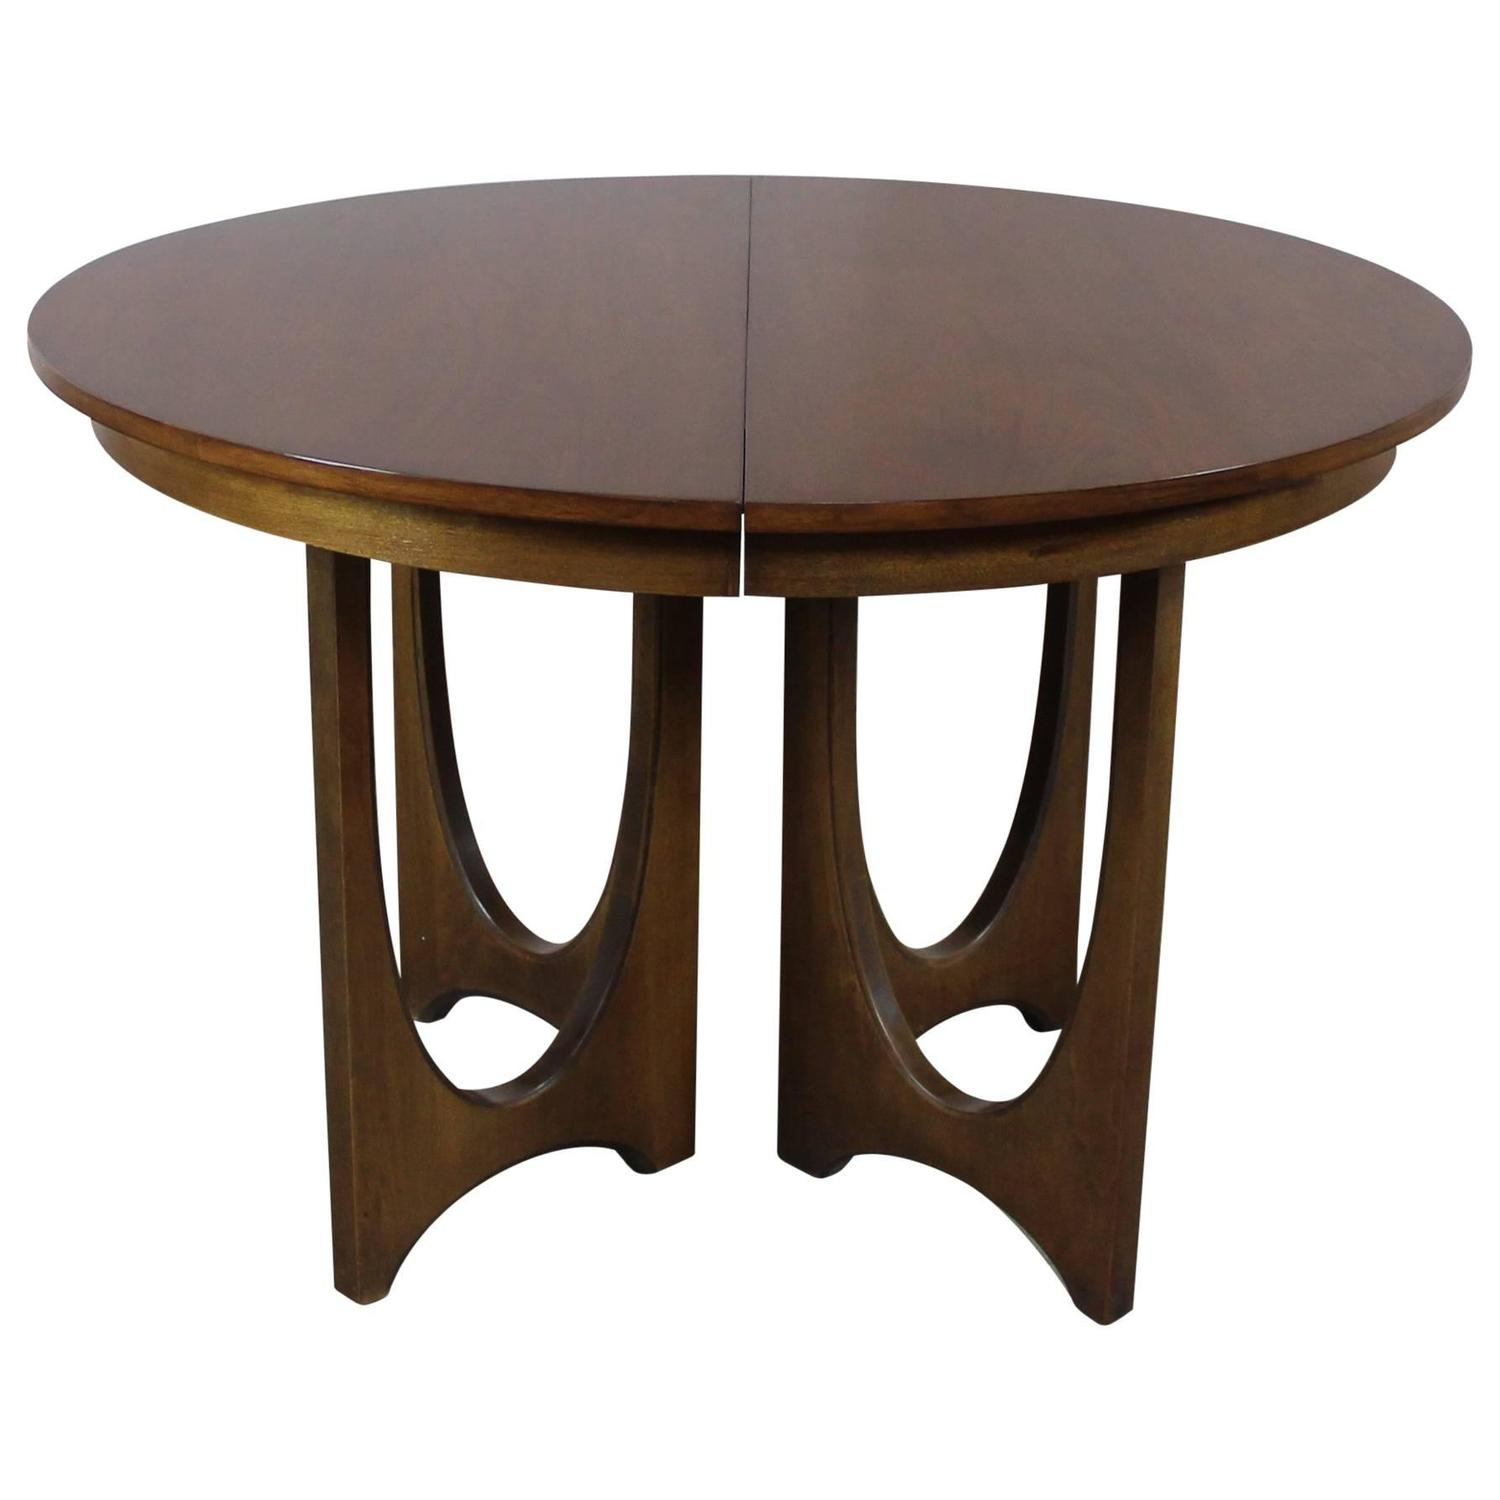 Mid century modern broyhill brasilia 6140 1645 round pedestal base dining table at 1stdibs